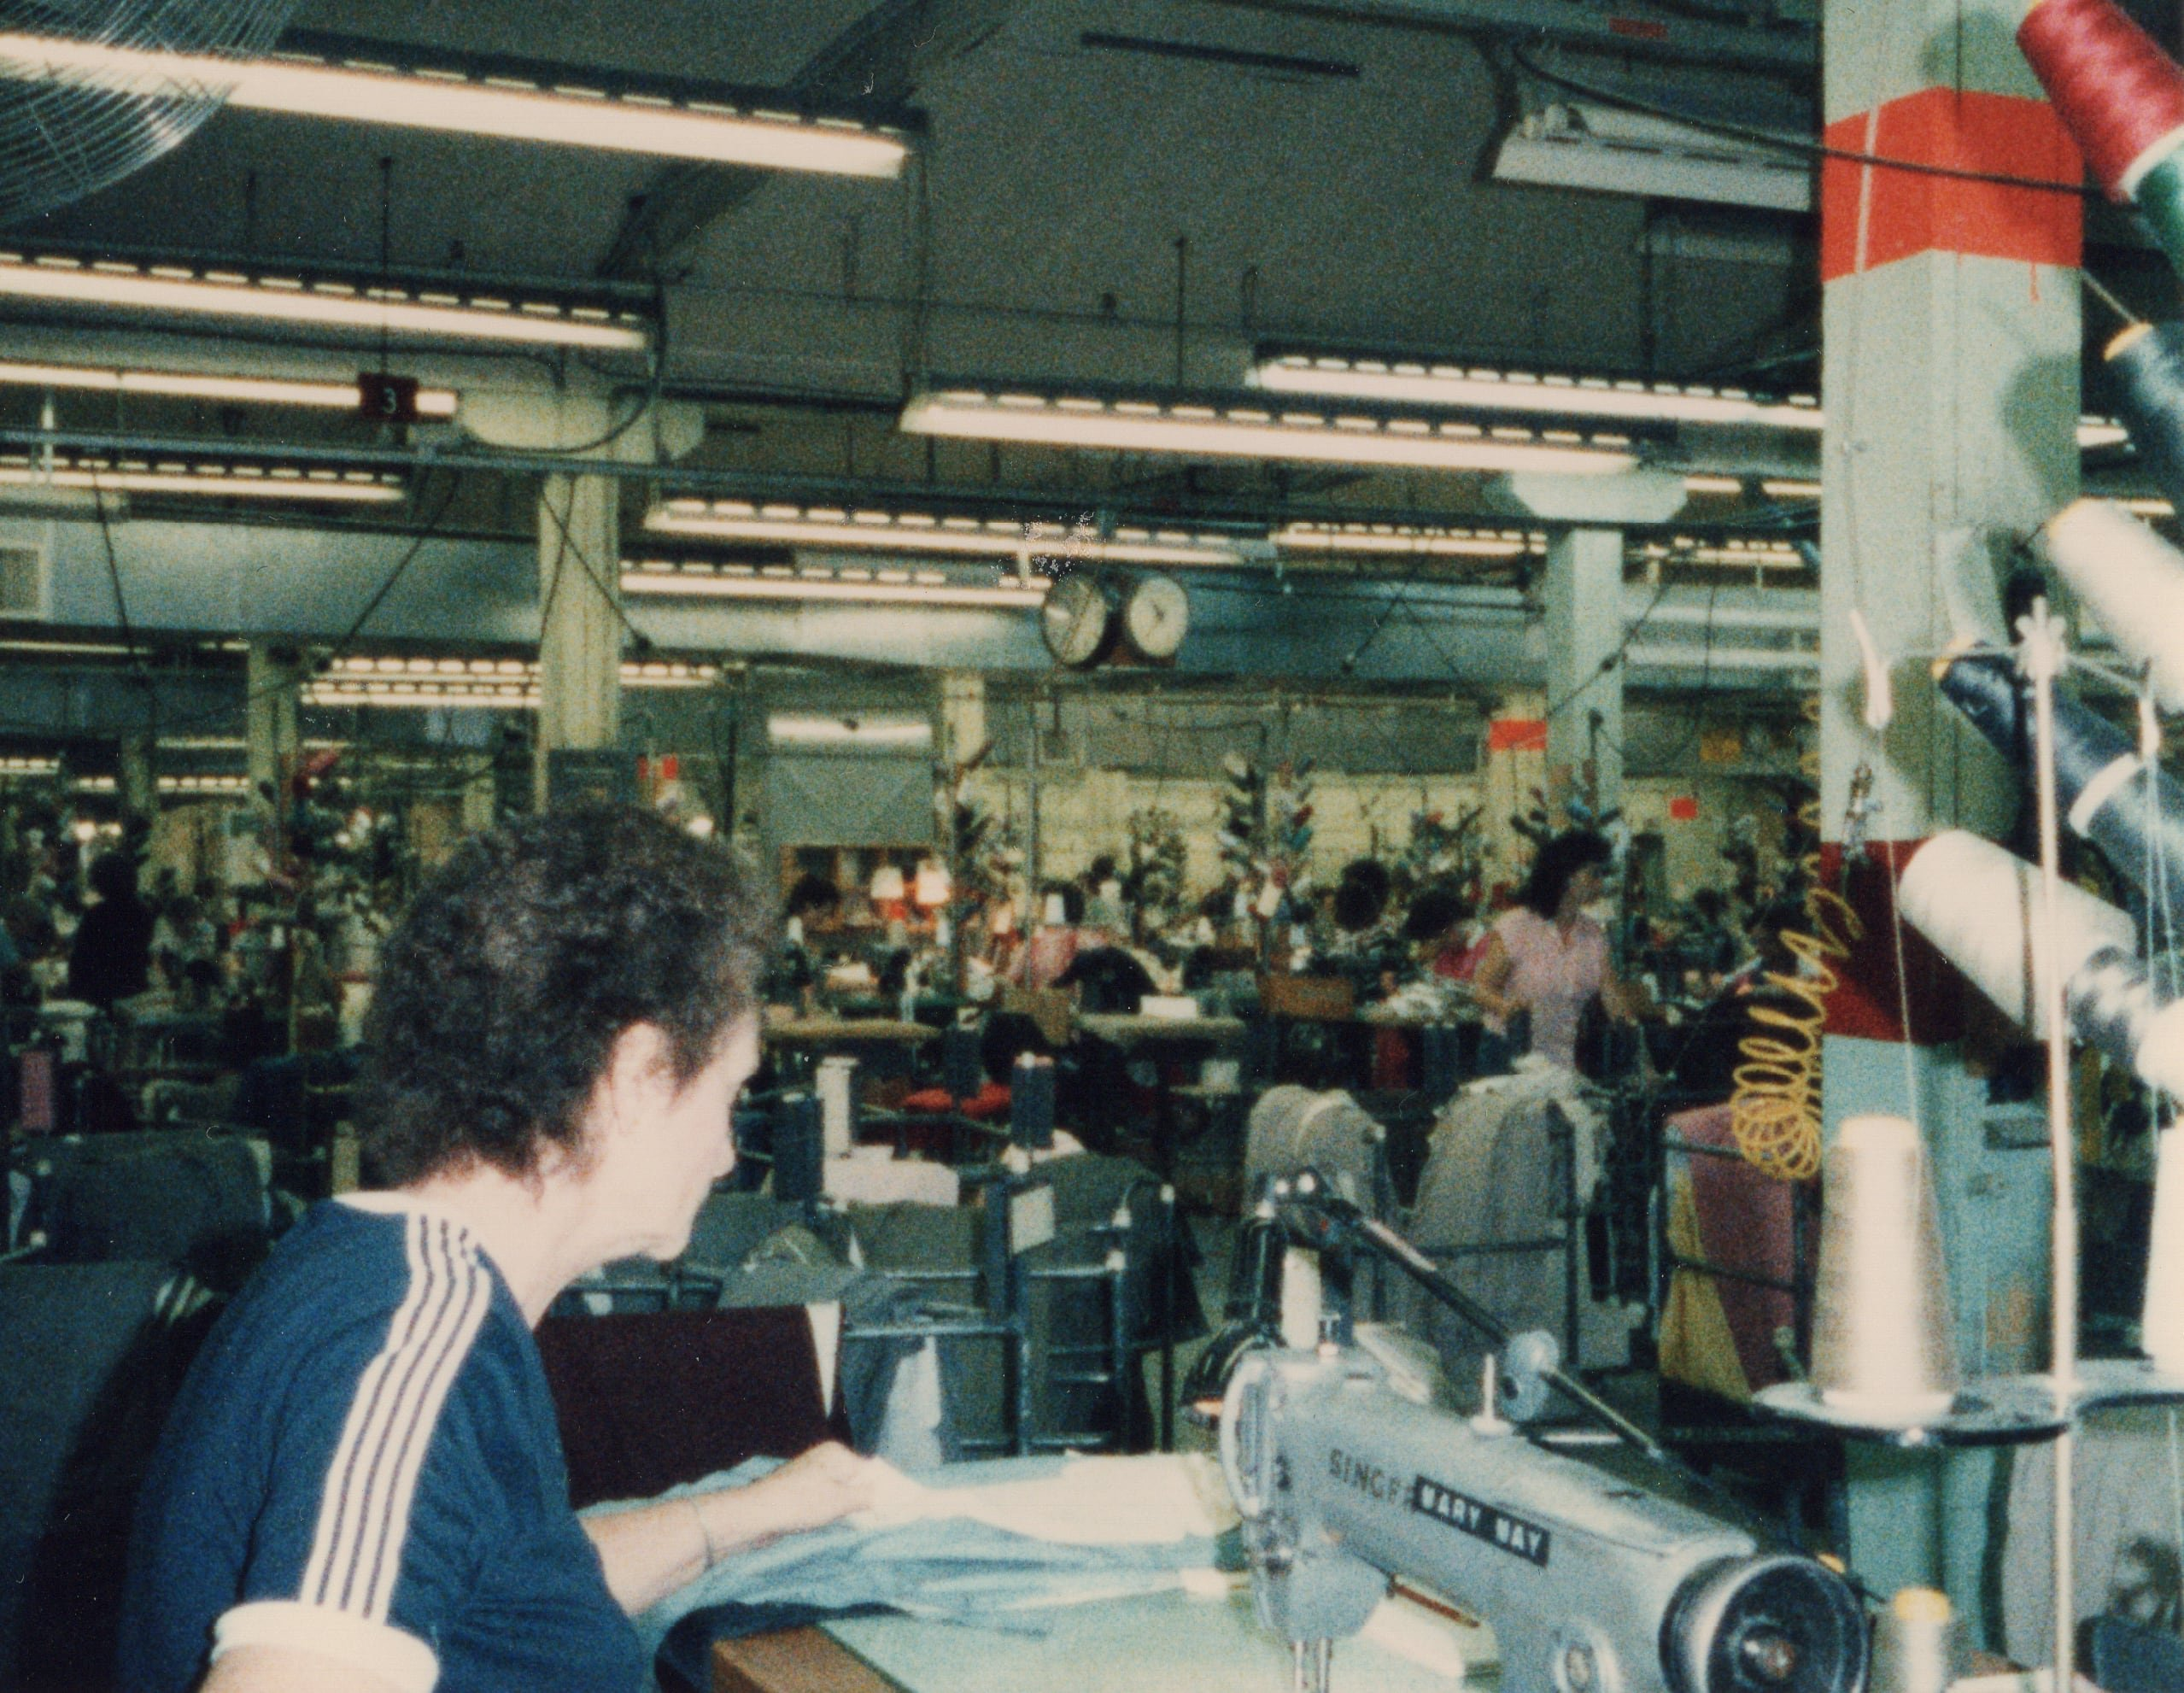 Corbin Ltd. Machine Operator Jeanette Mays sewing back pockets on trousers, Huntington, WV, 1985